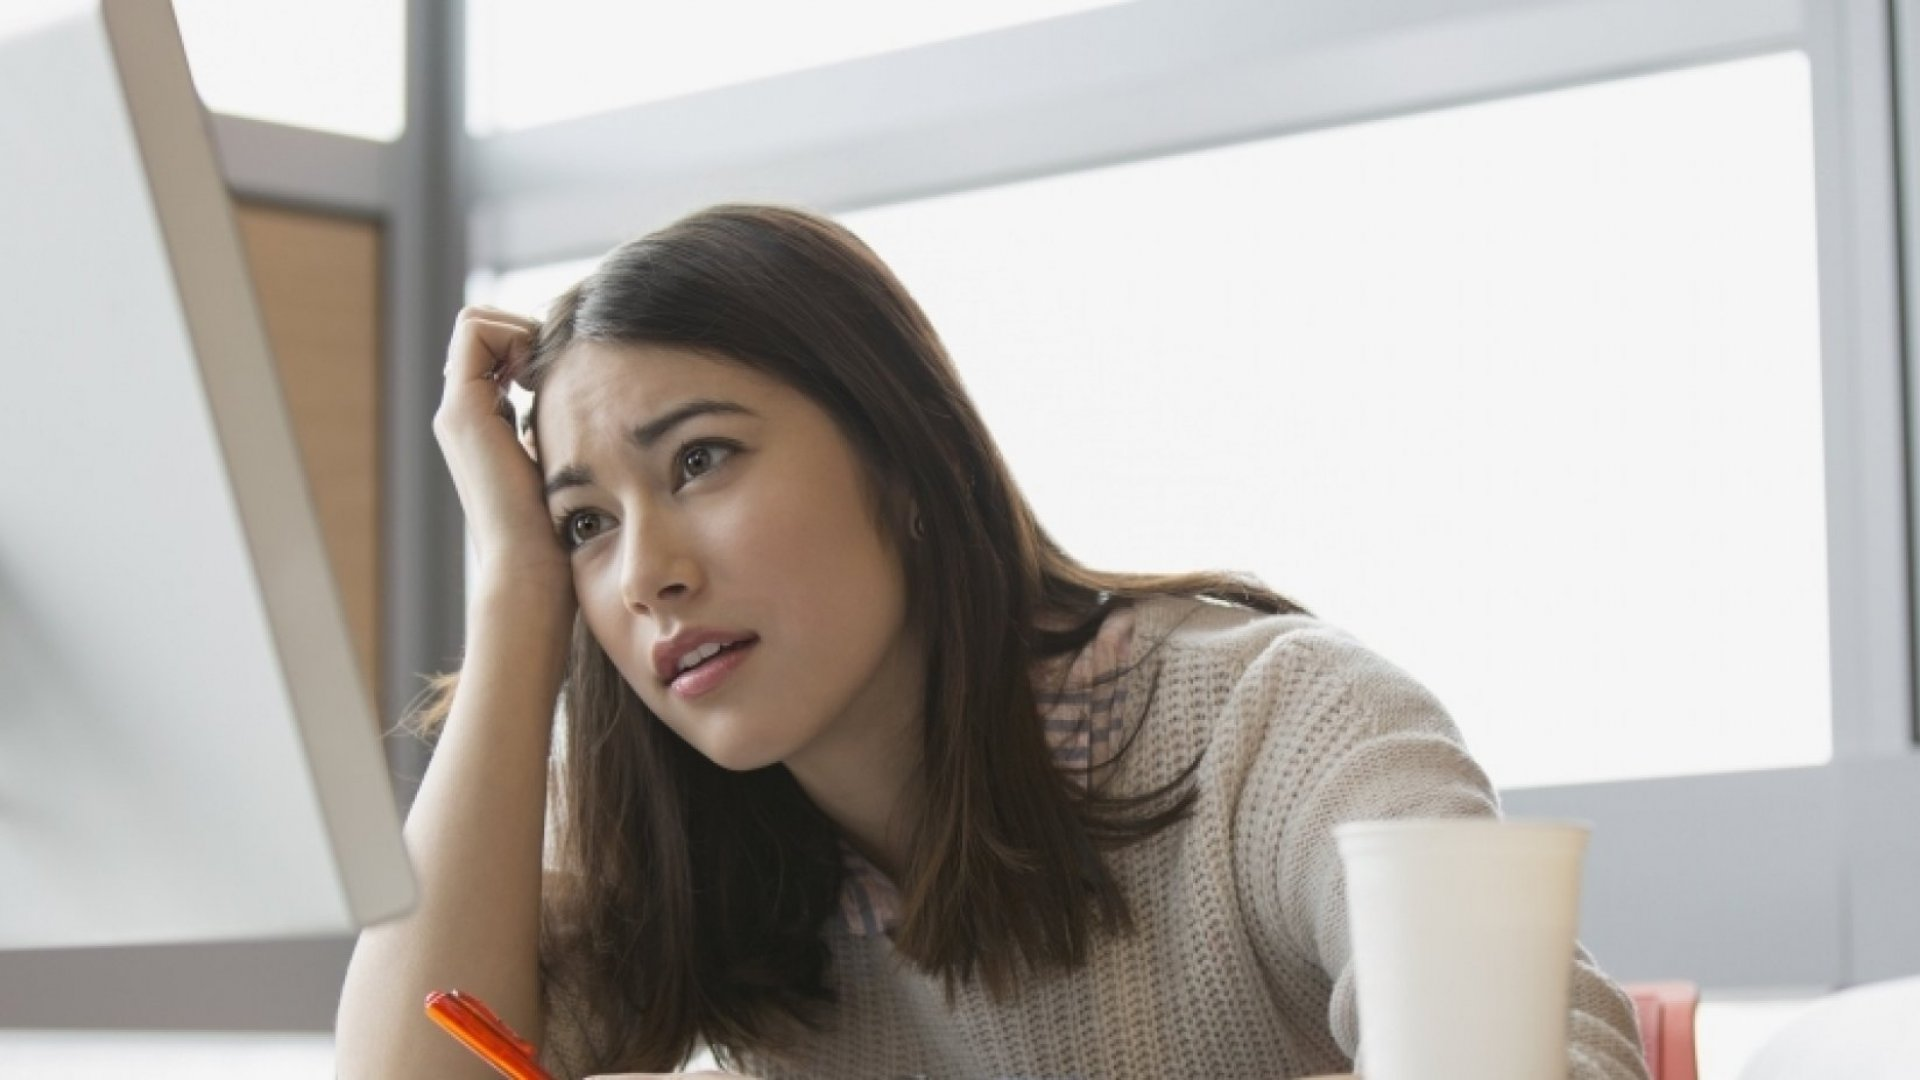 Adopt These 5 Work Habits to Avoid Burning Out